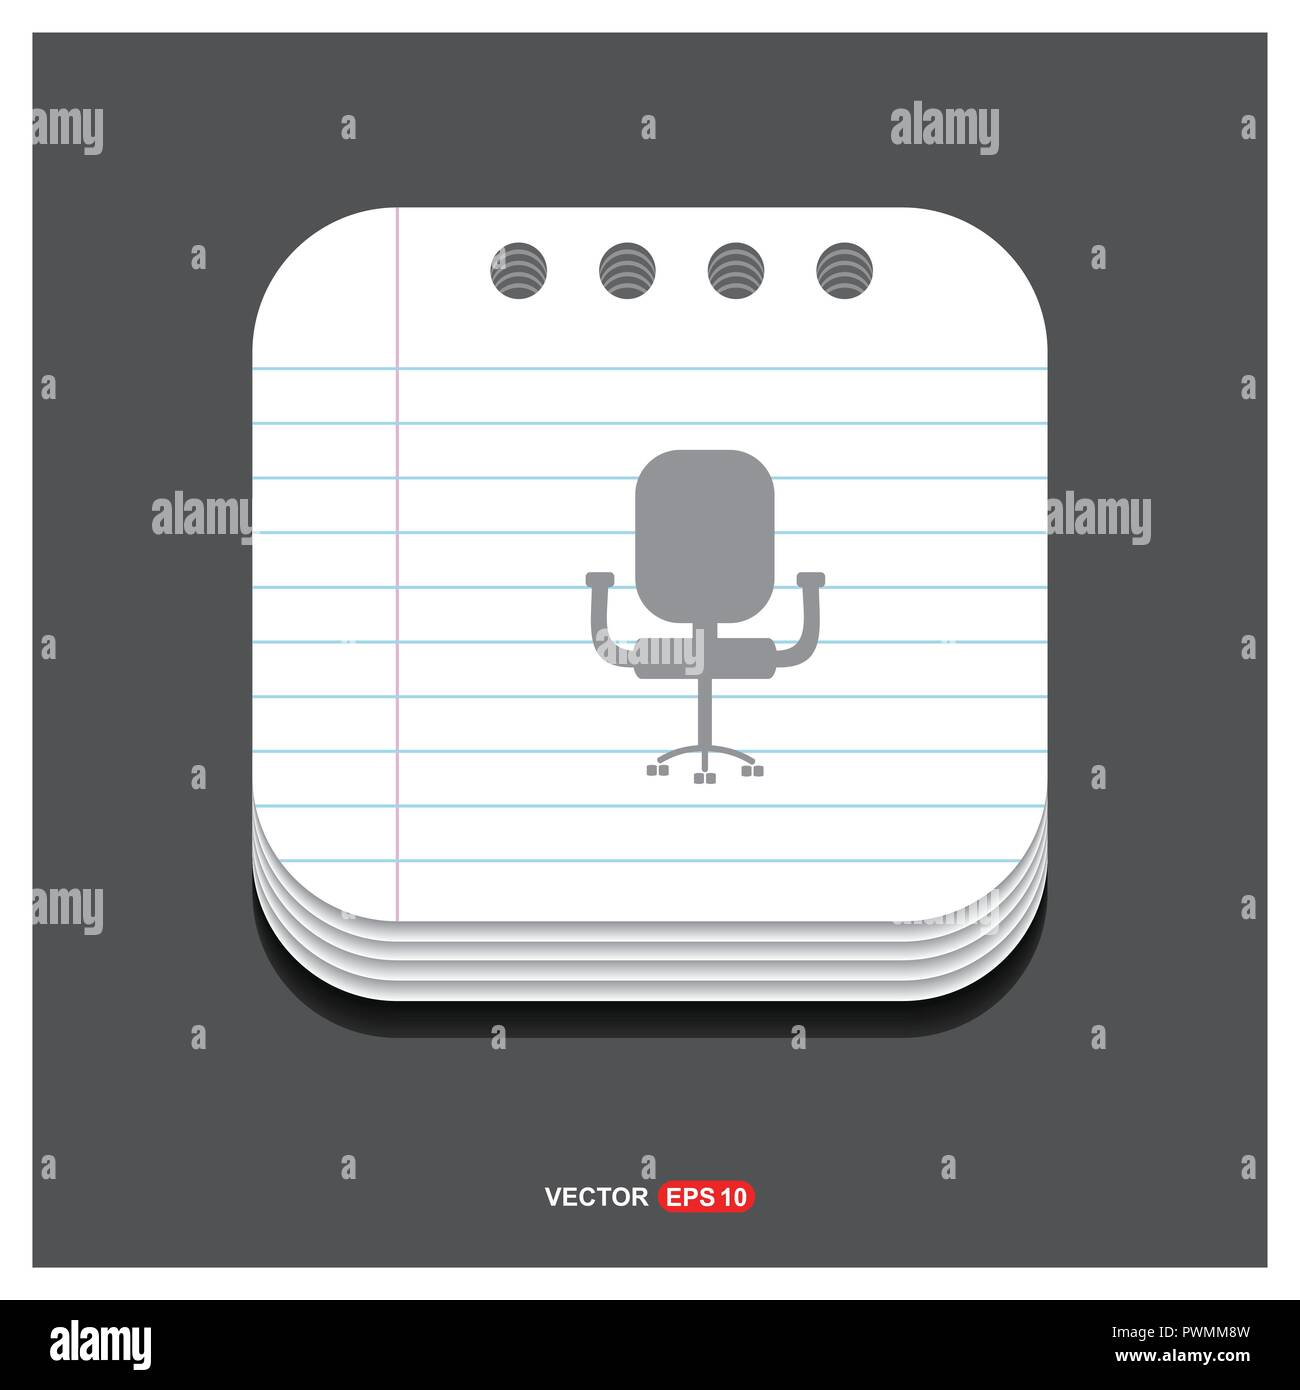 office chair icon free vector icon stock vector art illustration rh alamy com Office Chair Clip Art Fancy Office Chair